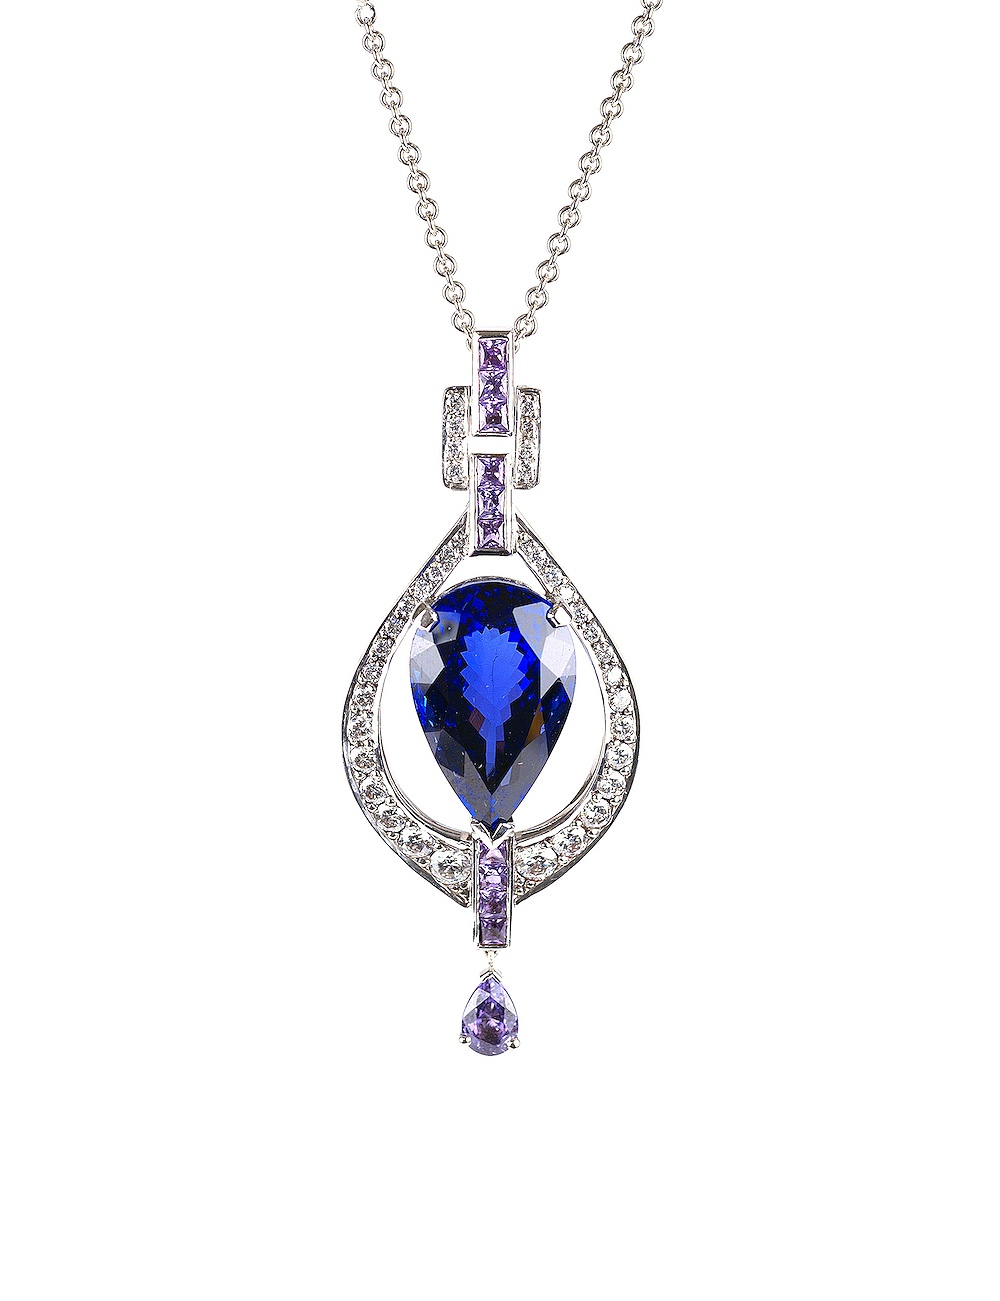 A fine example of a tanzanite, set in white gold with diamonds and embellished with lilac sapphires.